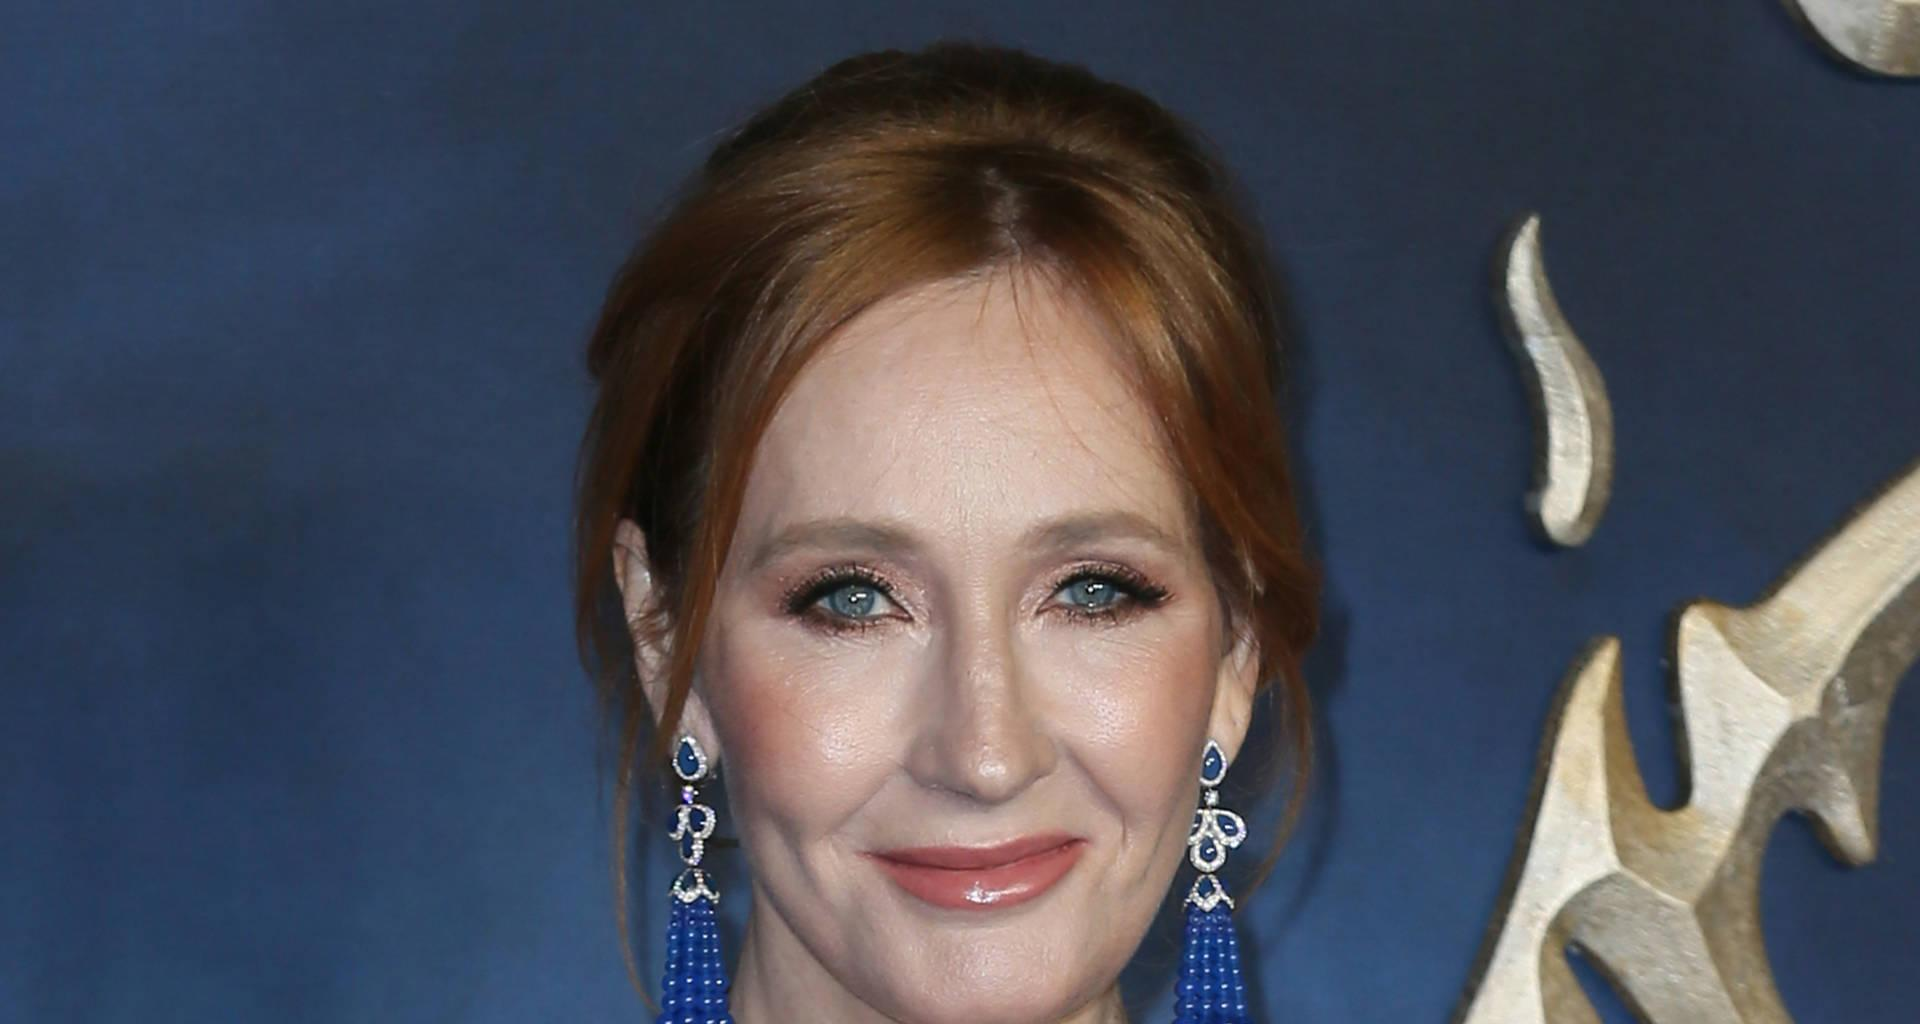 J.K. Rowling Reveals Sexual Assault Has Led To Her Views On Trans Rights Amid Backlash